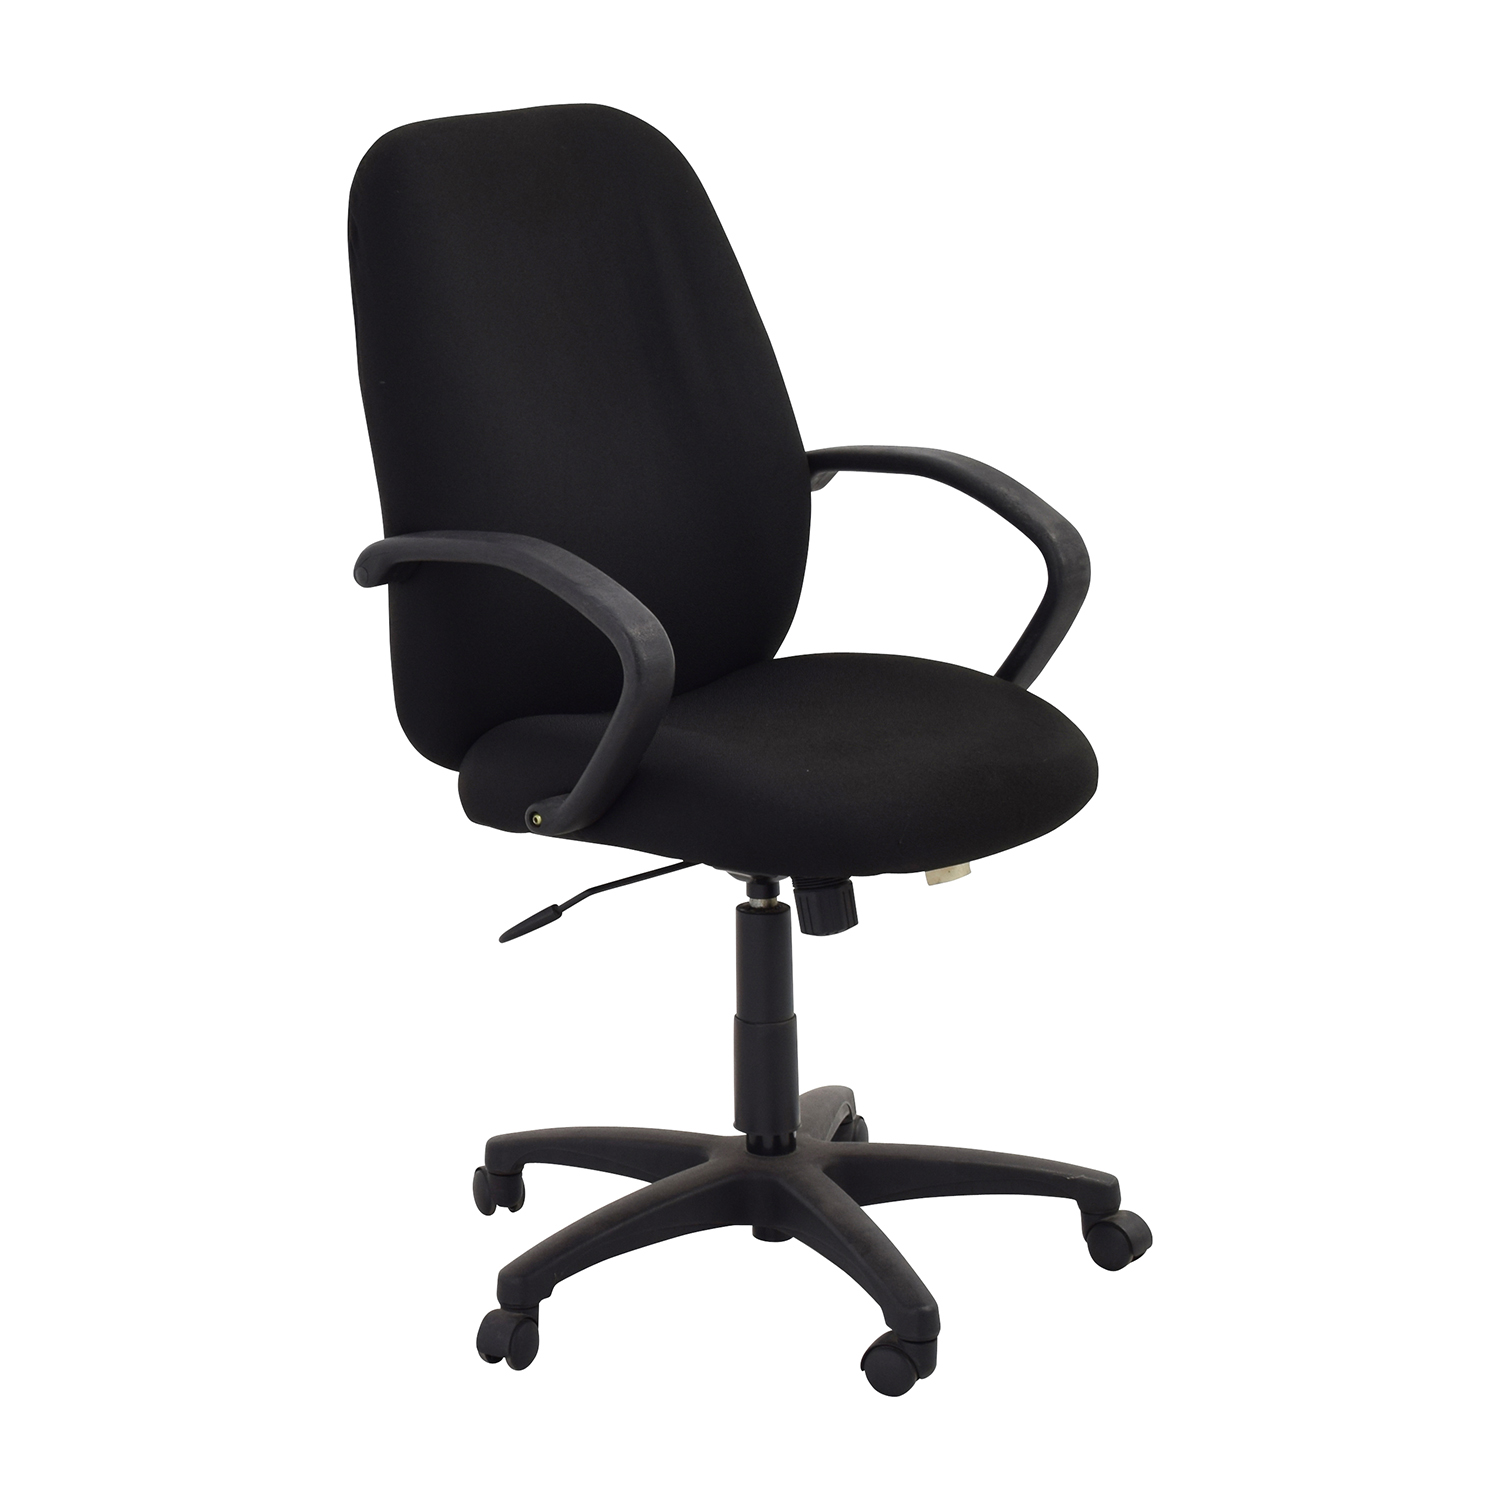 80 OFF  Black Swivel Office Chair  Chairs